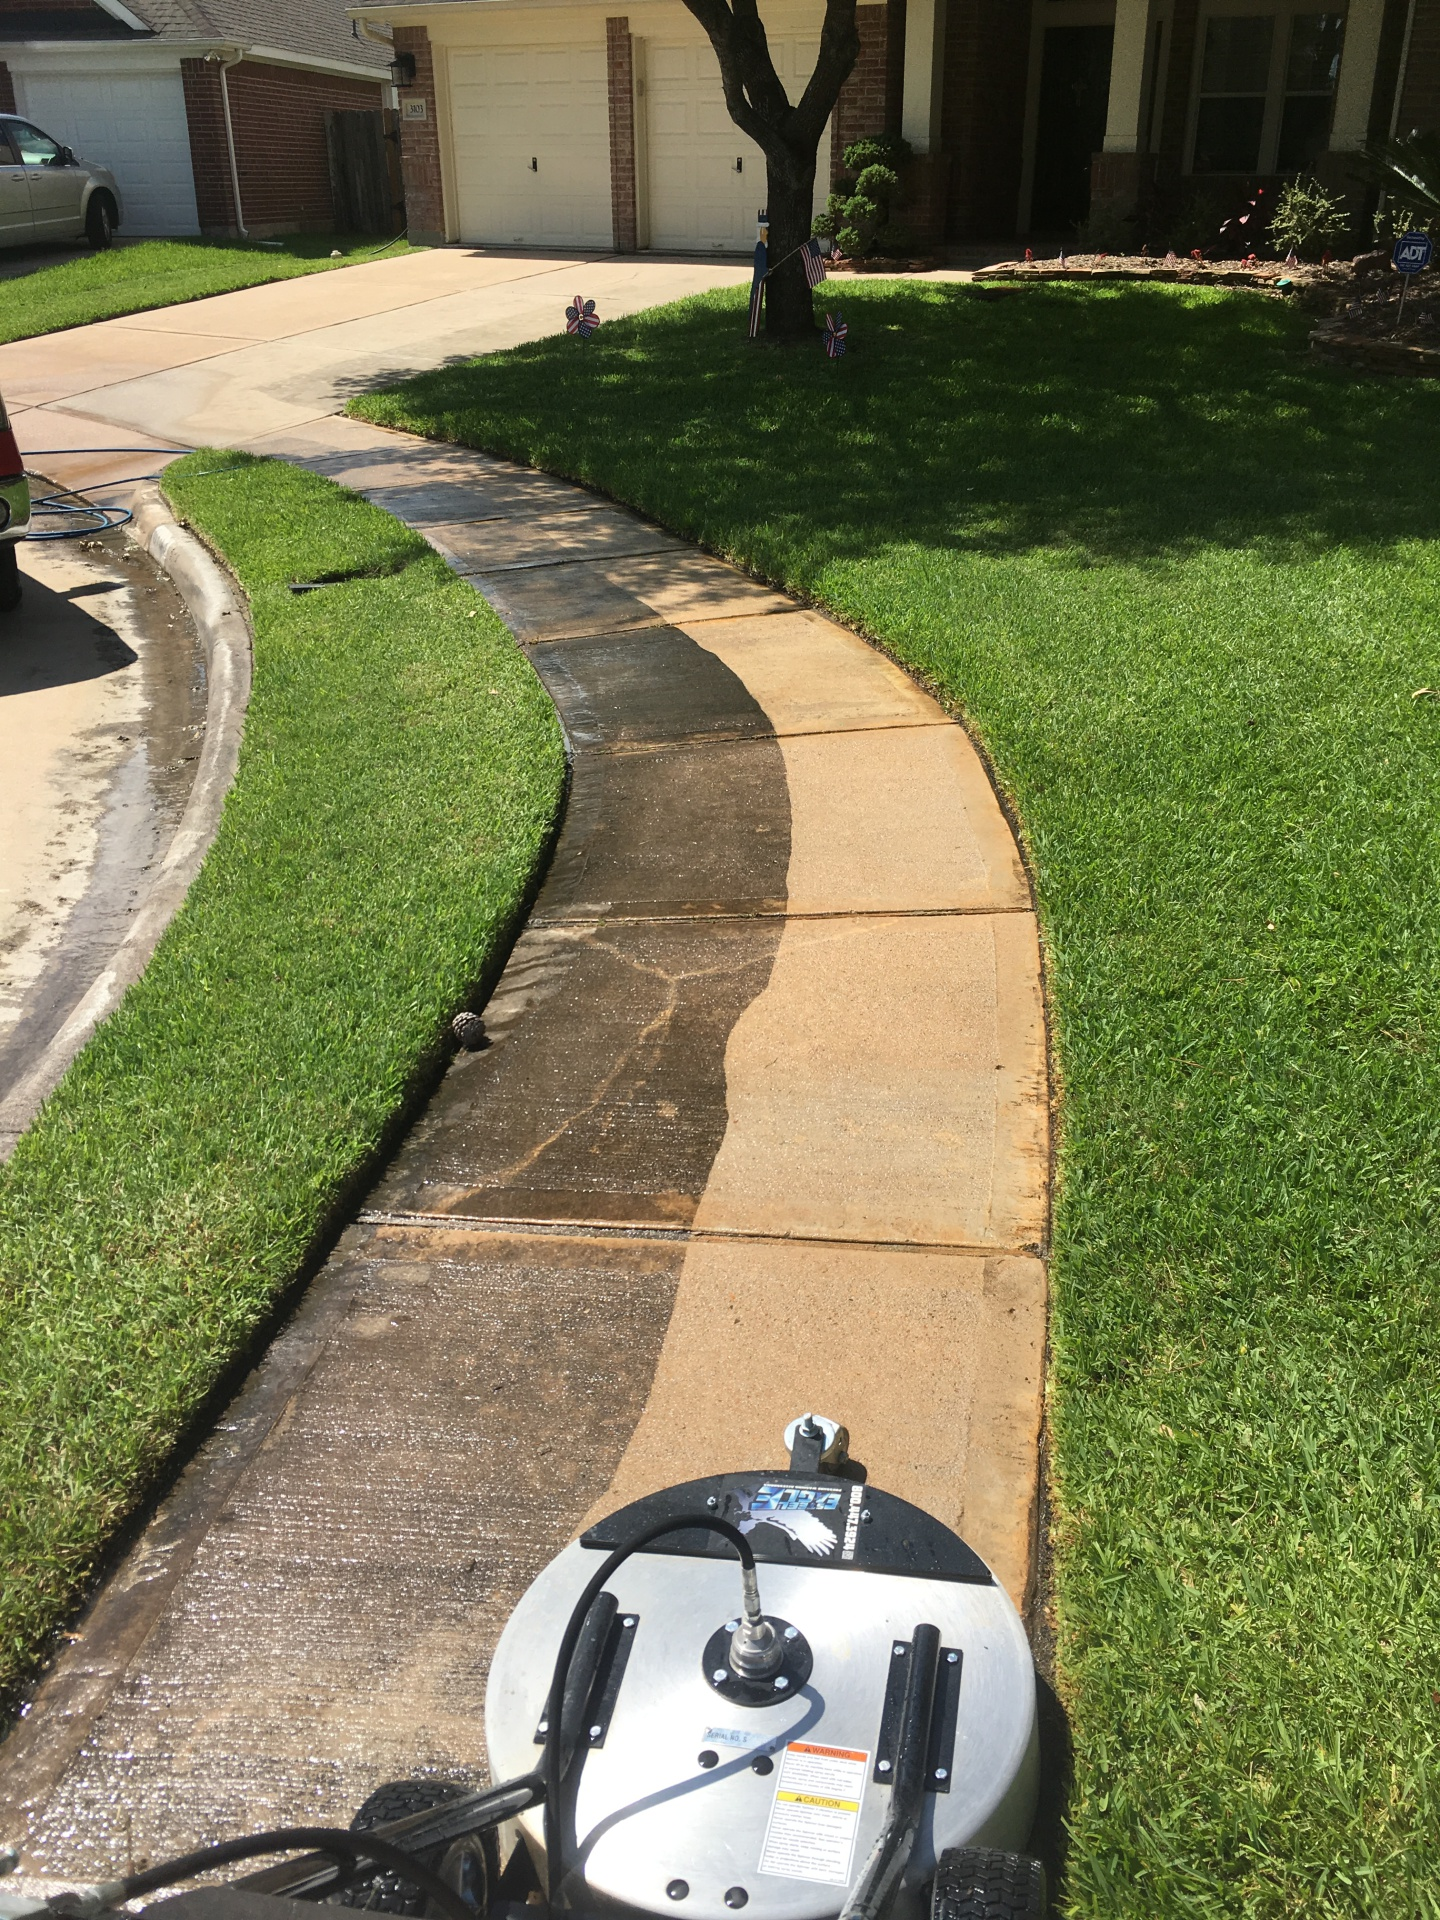 Sidewalk concrete pressure washing in pearland texas